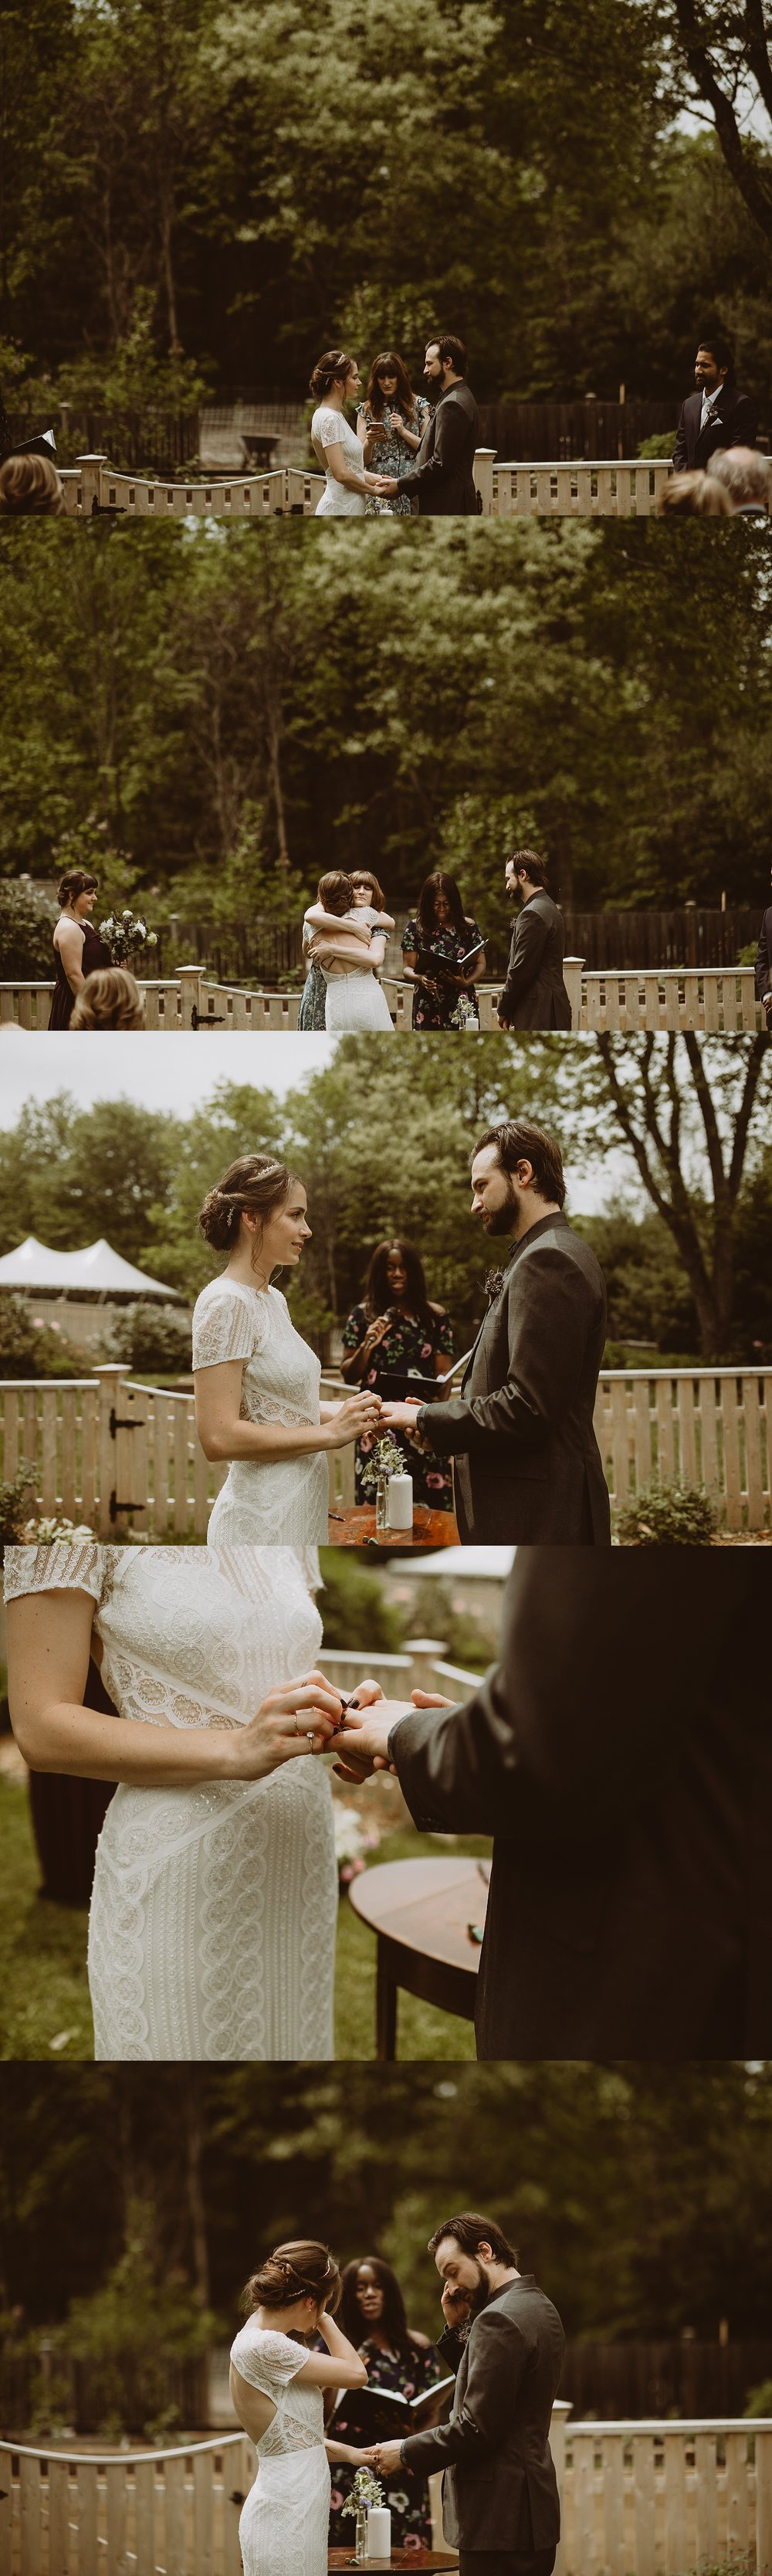 Brooklyn Skateboard Wedding (137 of 270).jpg